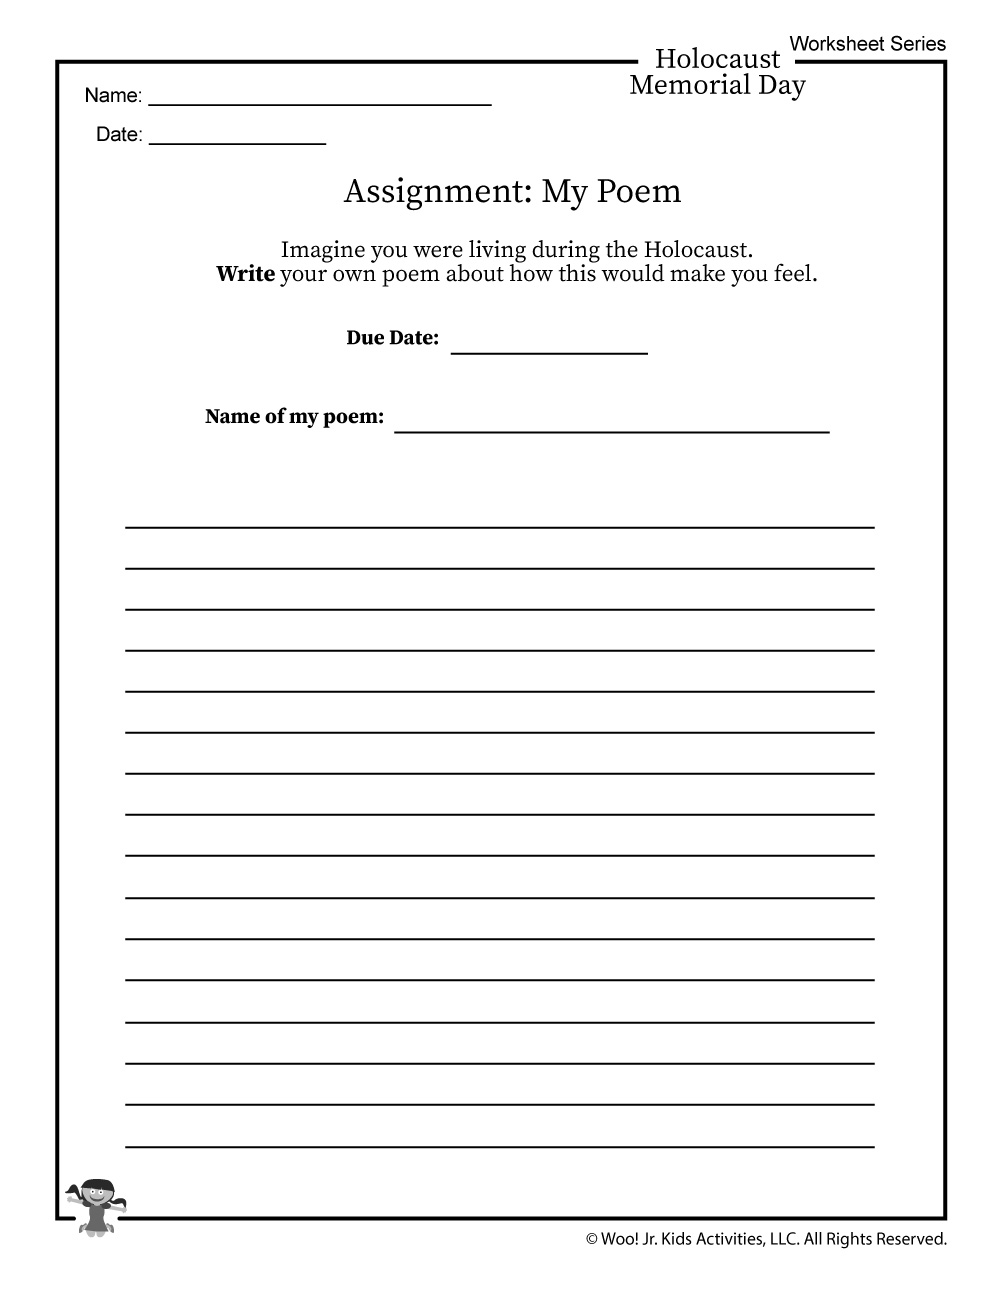 Holocaust Poem Writing Worksheet Woo Jr Kids Activities To write a poem, first decide whether you want to follow a specific structure such as a sonnet or we'll them use our extensive word lists to write a poem inspired by your input. holocaust poem writing worksheet woo